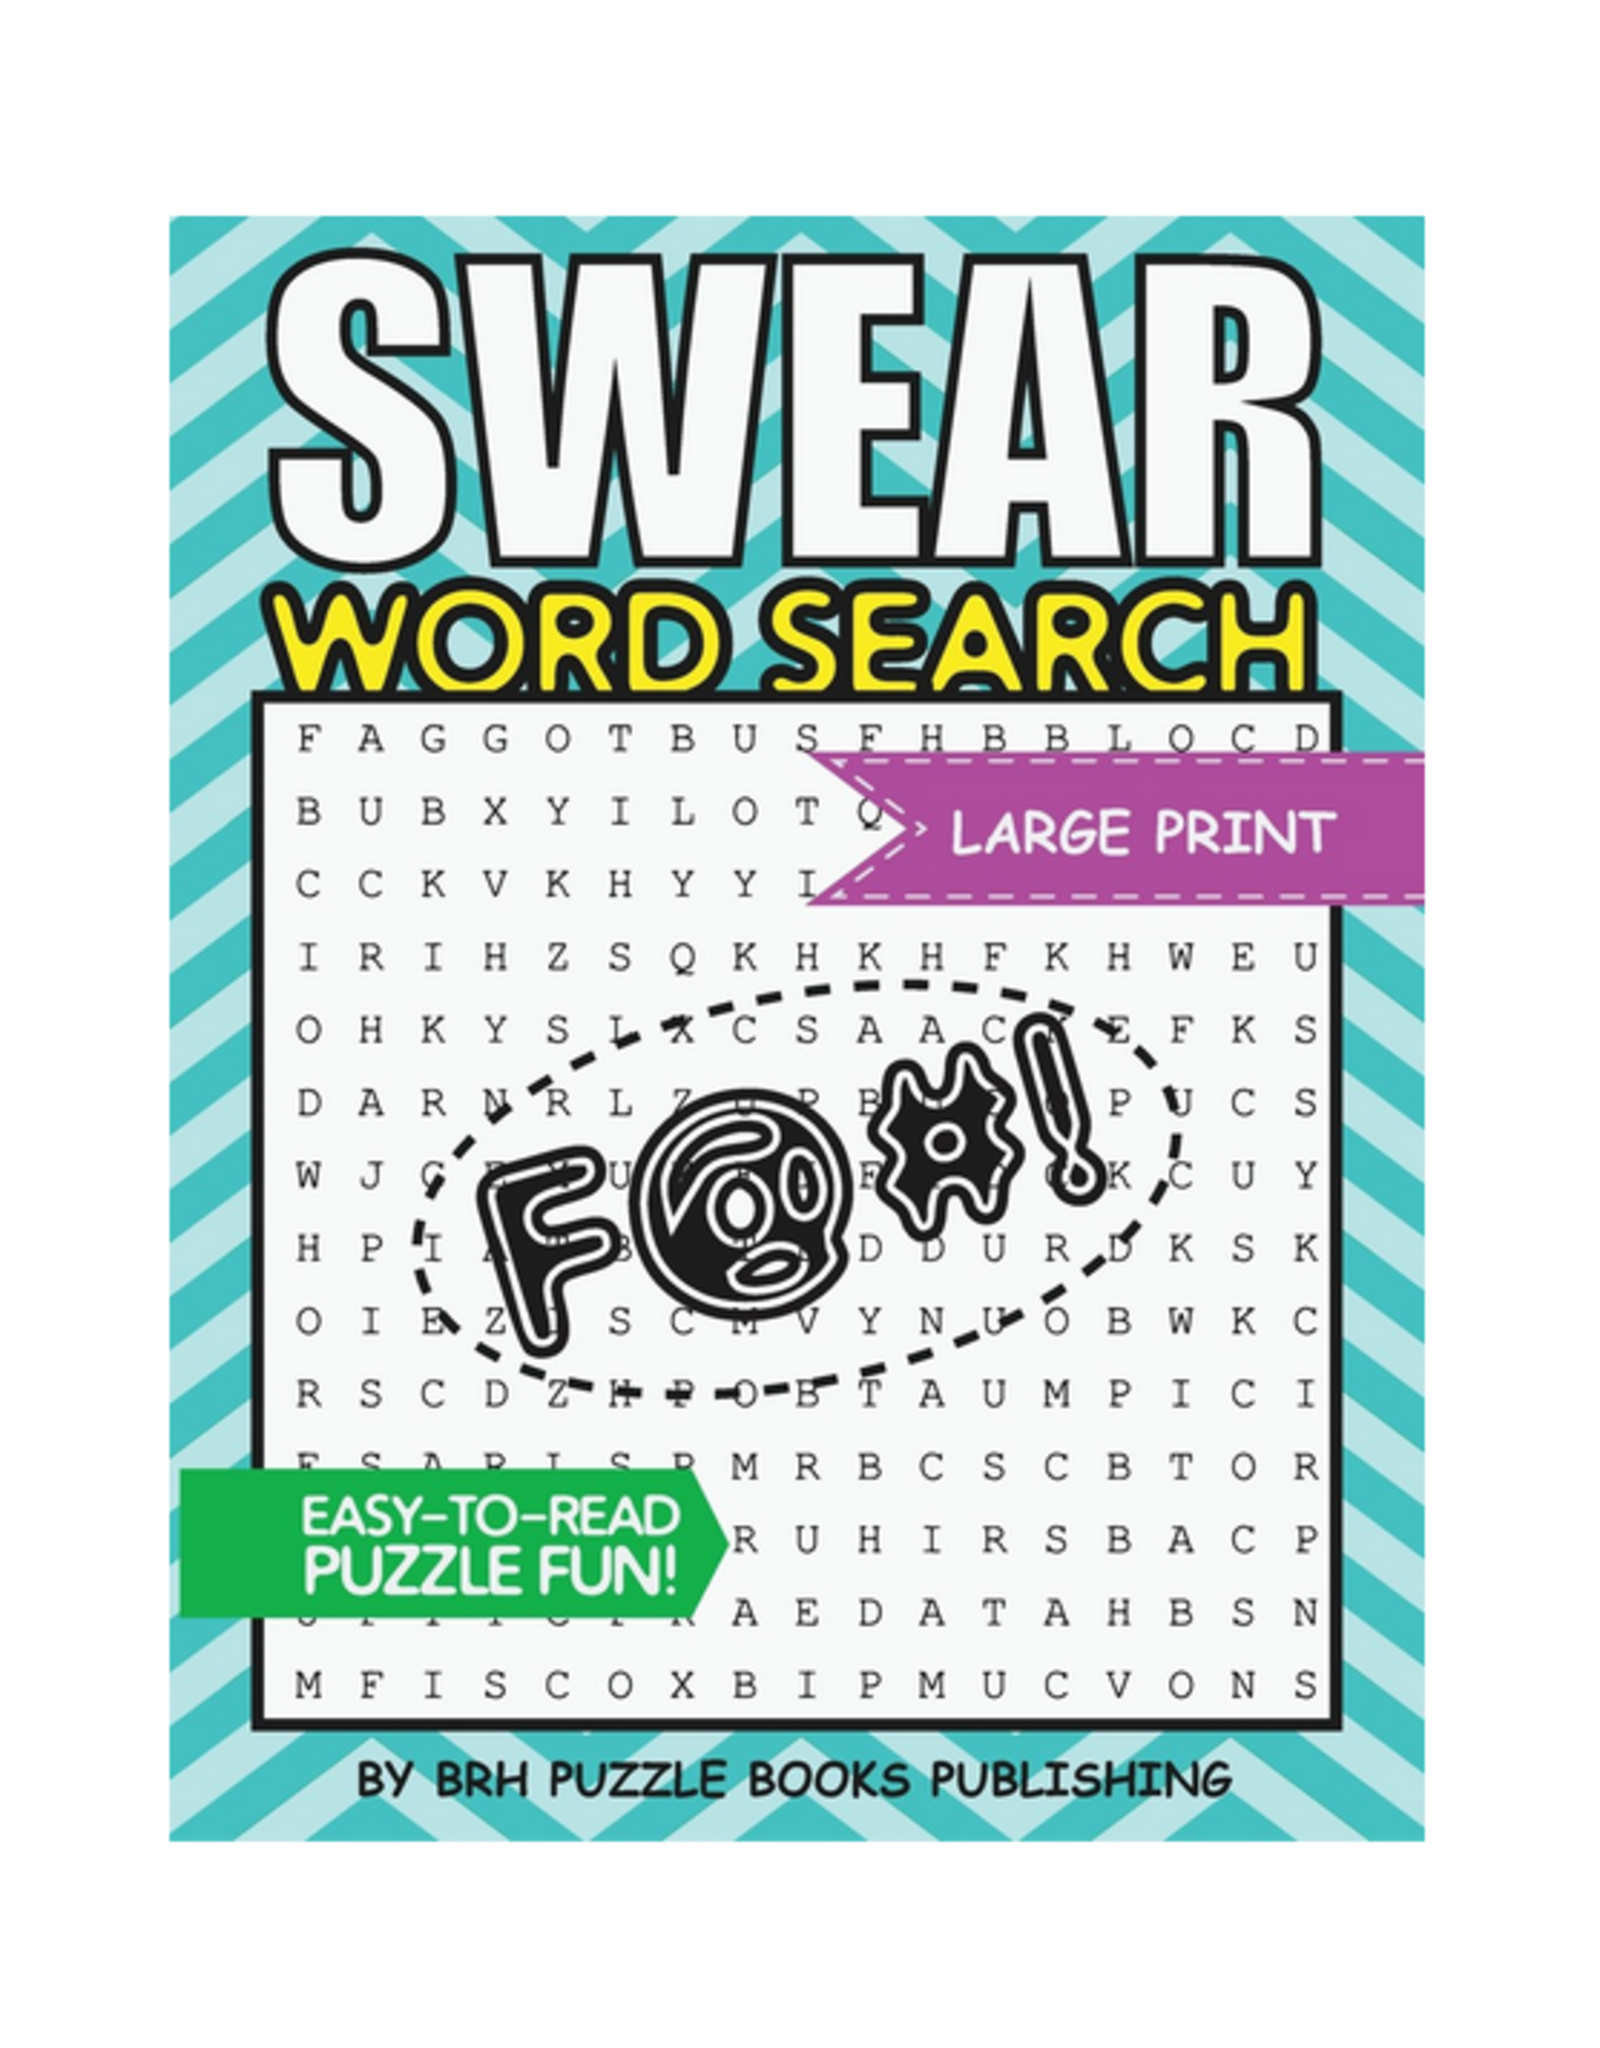 Brh Puzzle Books Activity Book, Swear Word Search for Adults, Large Print